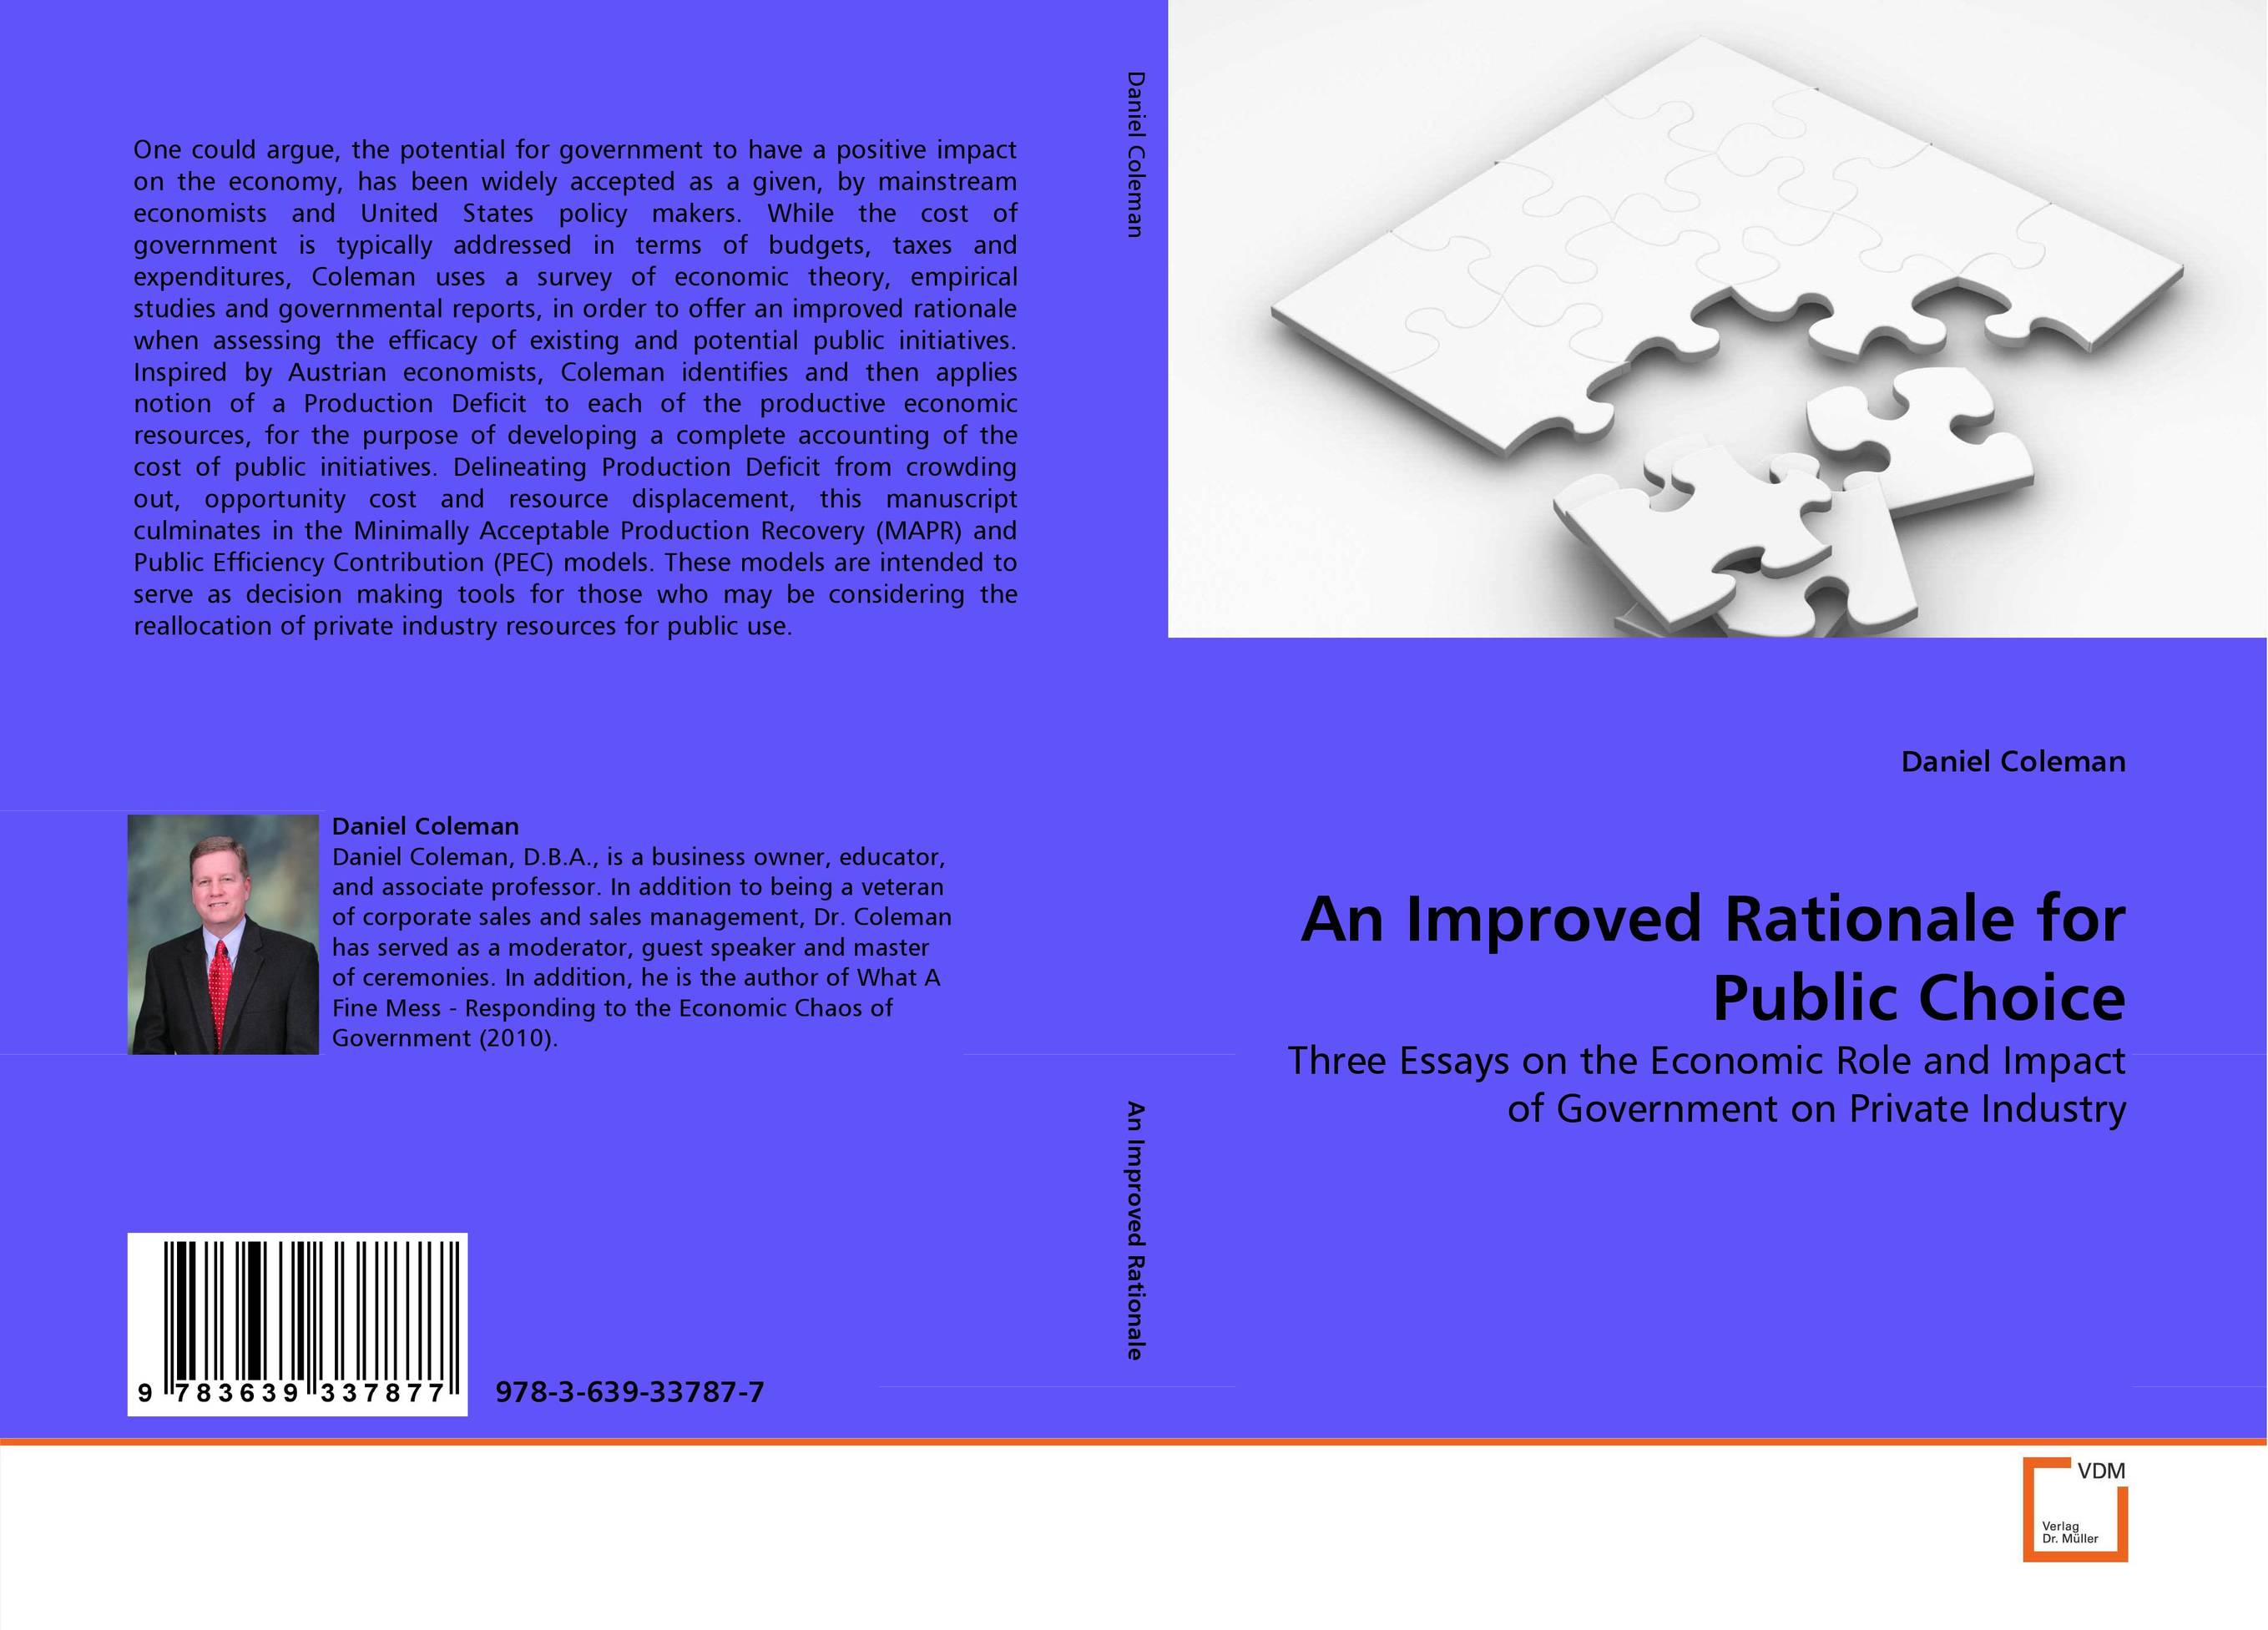 evaluate the impact of economics and the government on business operations Government effectiveness indicator description this indicator measures the quality of public services, the quality of the civil service and its independence from political pressures, the quality of policy formulation and implementation, and the credibility of the government's commitment to its stated policies.